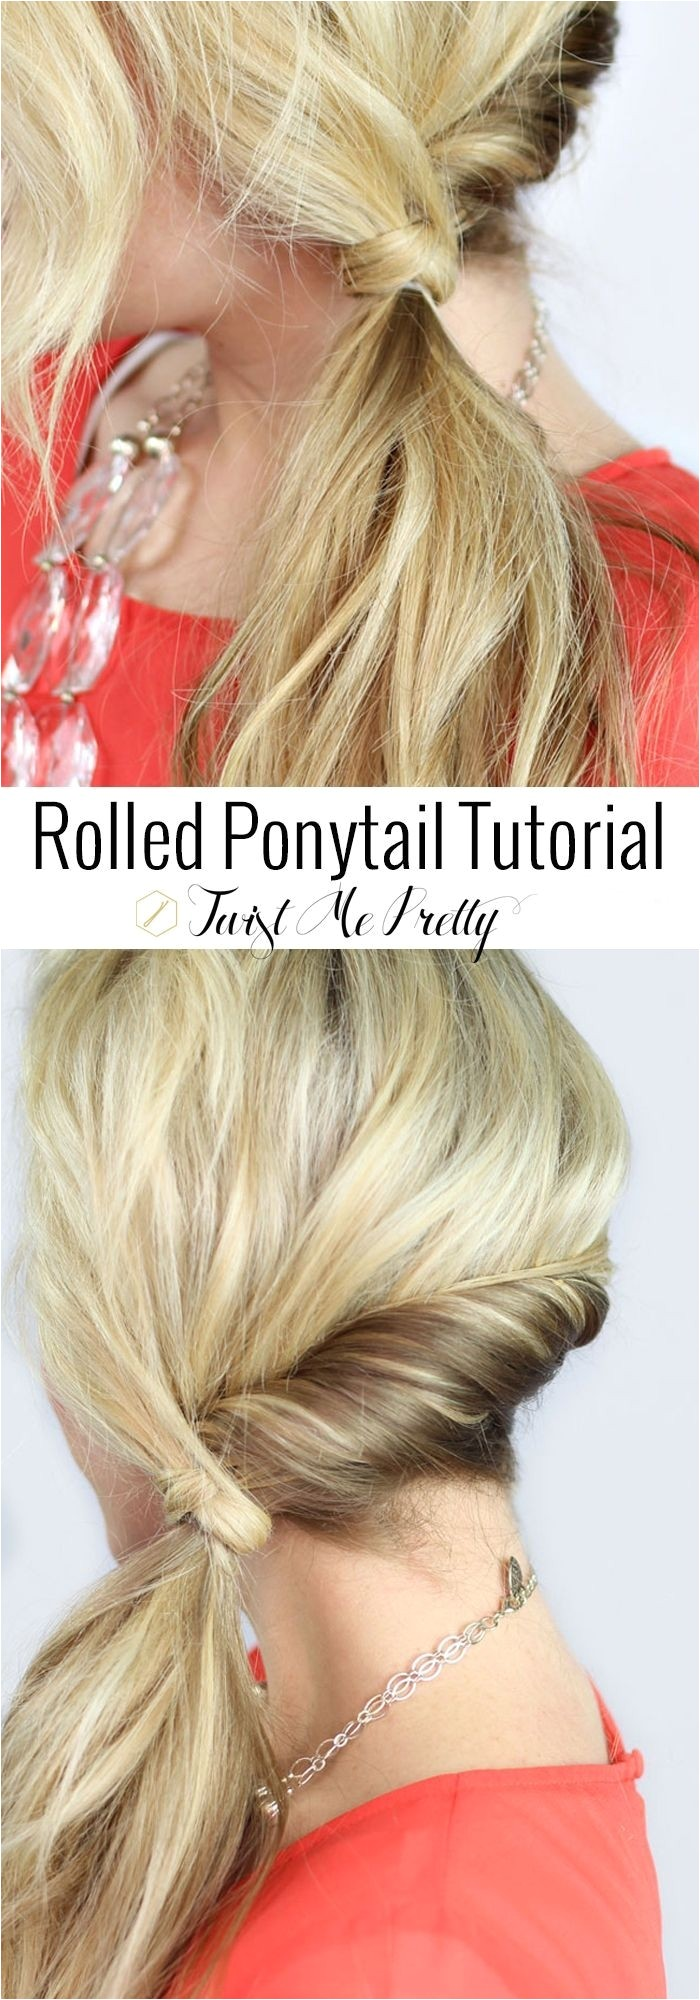 15 cute everyday hairstyles